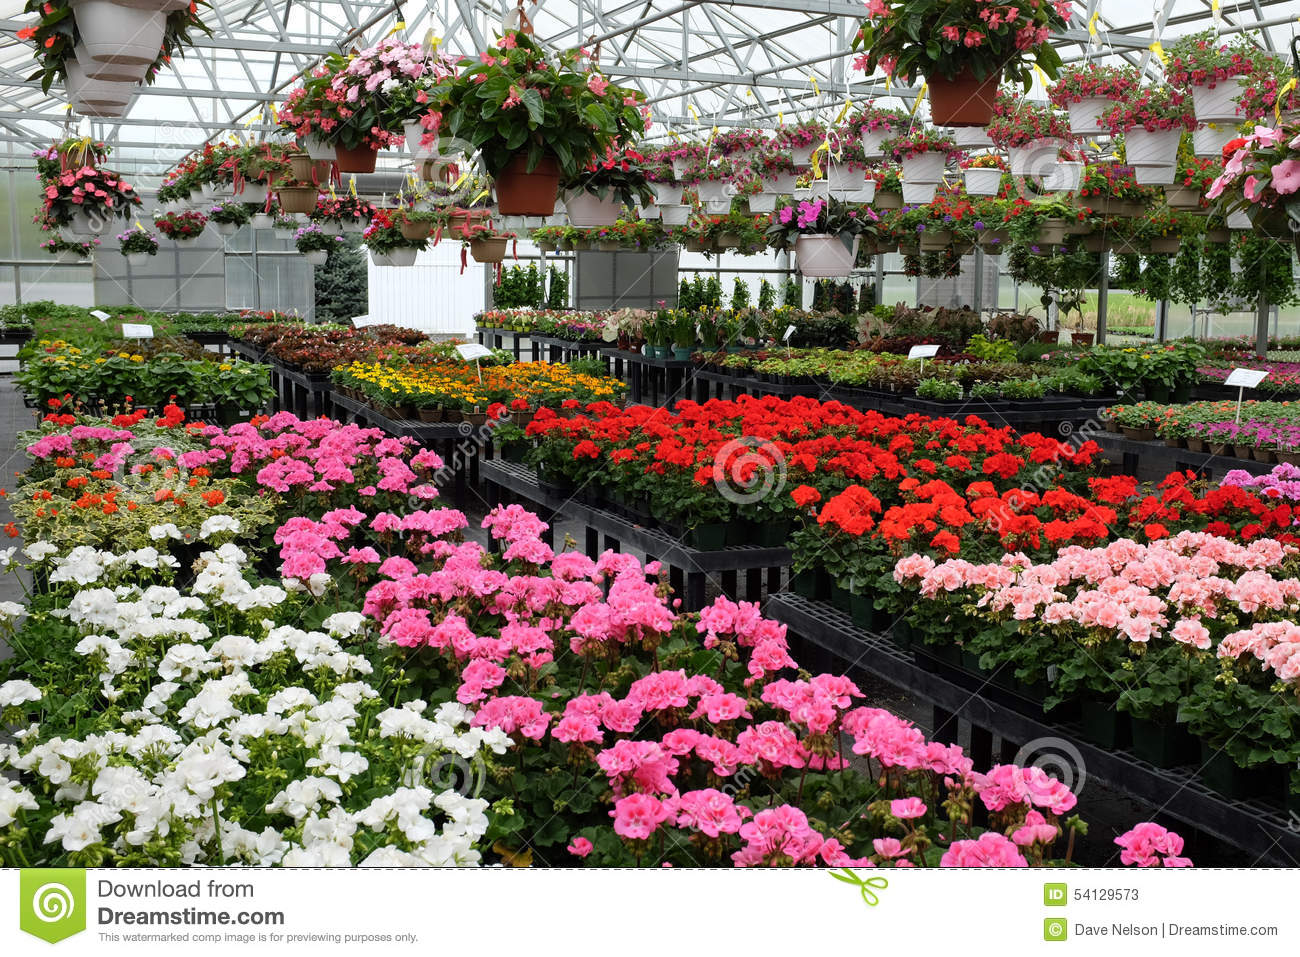 Colorful Flowers For Sale In Greenhouse Stock Image Image Of